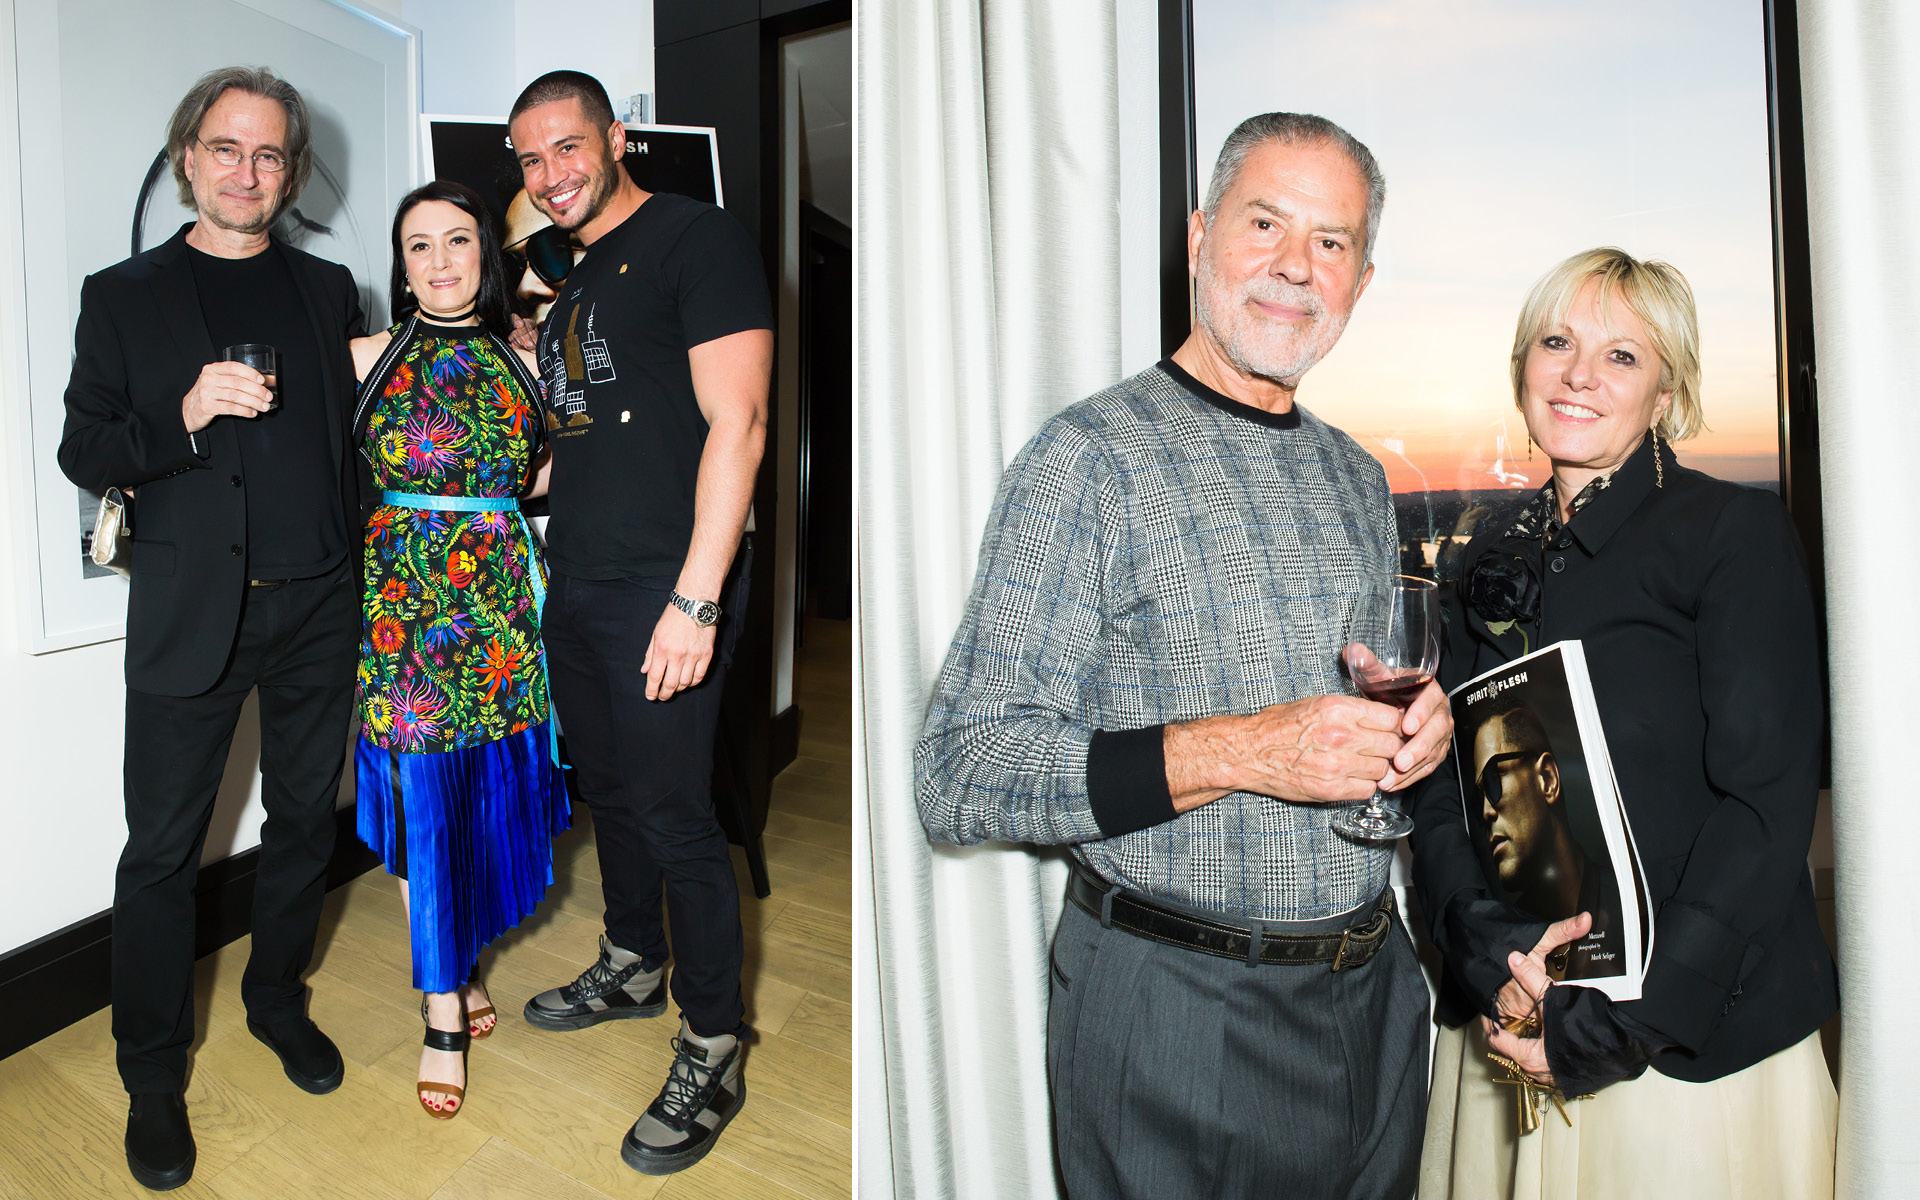 Left: Christopher Austopchuk, Yelena Deyneko and Edward Cruz; Right: Thanos Kamiliotis and Daniela Kamiliotis, at Edition Hotel, celebrating Maxwell birthday and Spirit & Flesh magazine cover story by Mark Seliger